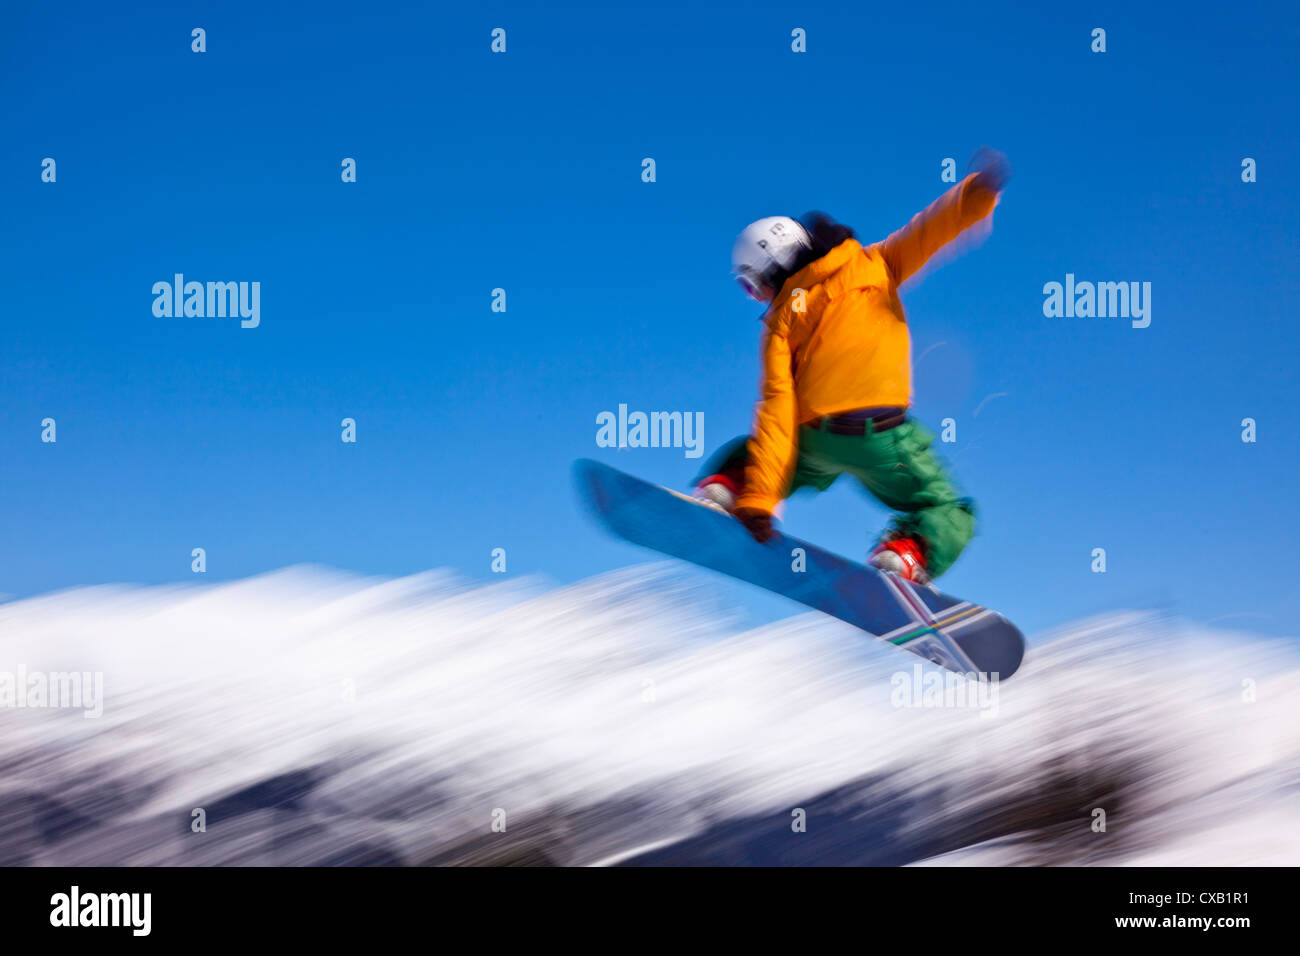 Snowboarder flying off a ramp, Whistler Mountain, Whistler Blackcomb Ski Resort, Whistler, British Columbia, Canada Stock Photo